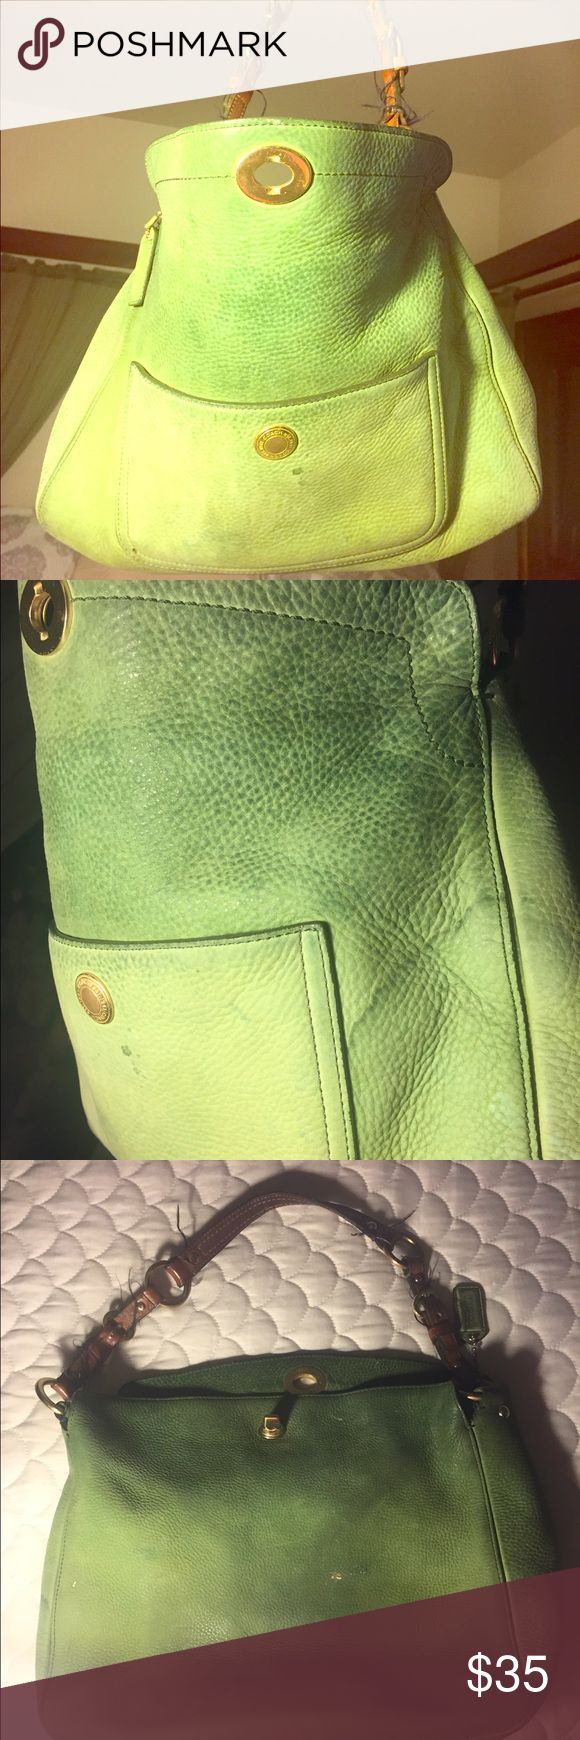 COACH Pistachio Green Suede 💚PRICED TO SELL💚 This bag shows sign of wear & is PRICED TO SELL💙Paid $400 if you have any questions please let me know. Coach Bags Hobos